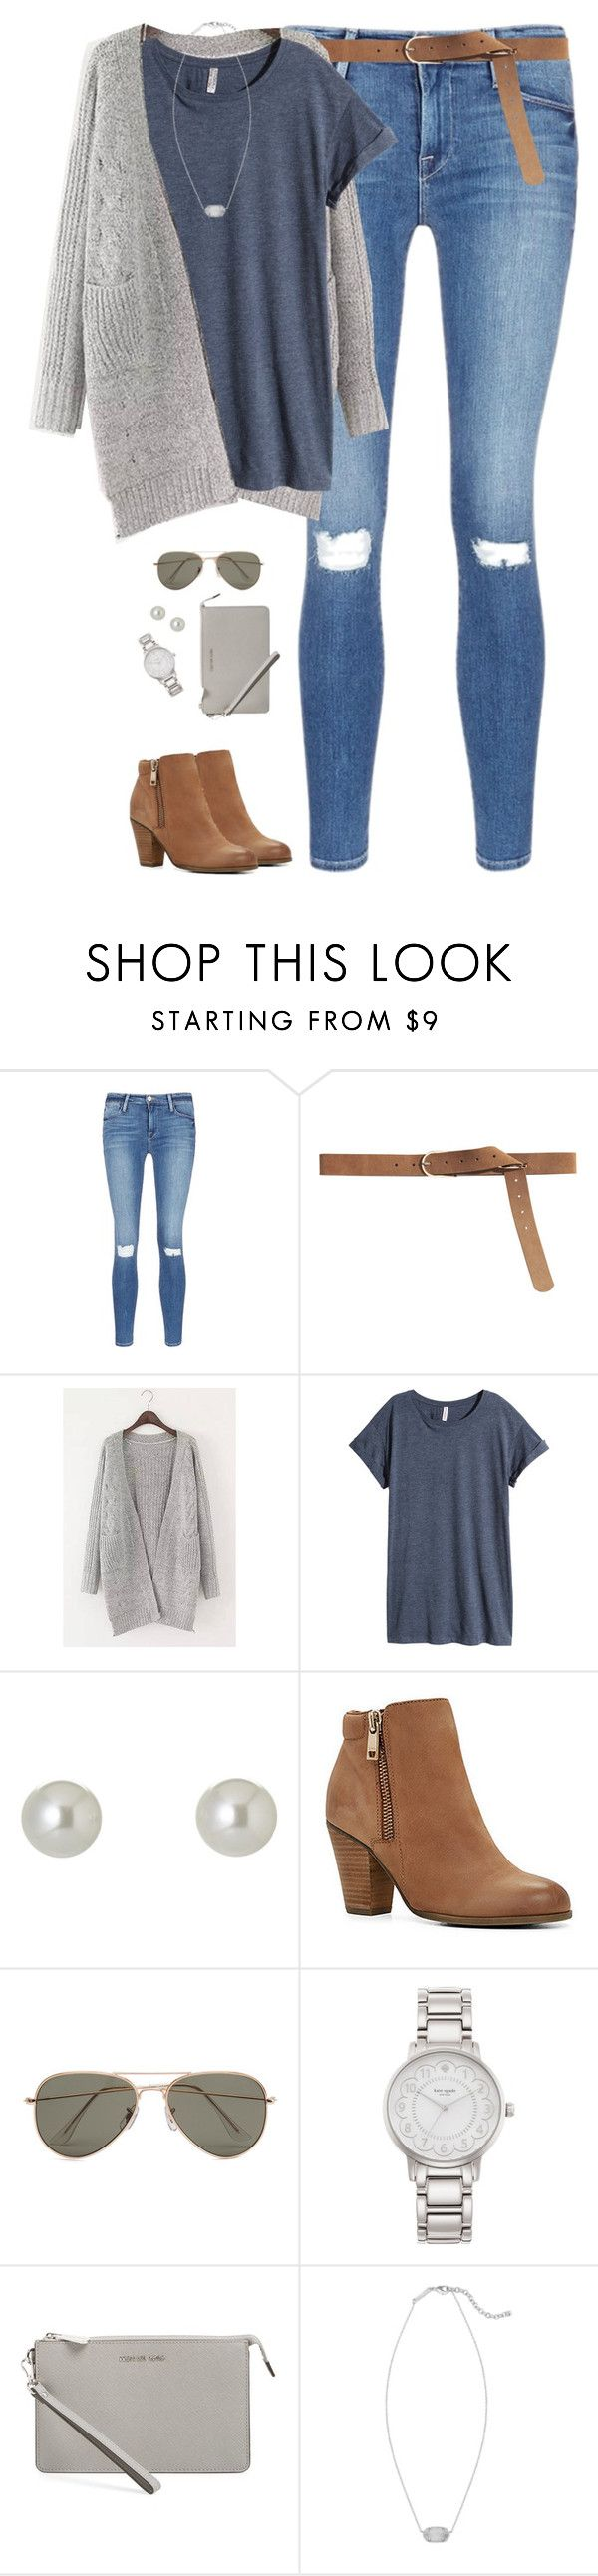 """Gray chunky cardigan, blue tee & ripped jeans"" by steffiestaffie ❤ liked on Polyvore featuring Frame Denim, H&M, Givenchy, ALDO, SELECTED, Kate Spade, MICHAEL Michael Kors and Kendra Scott"